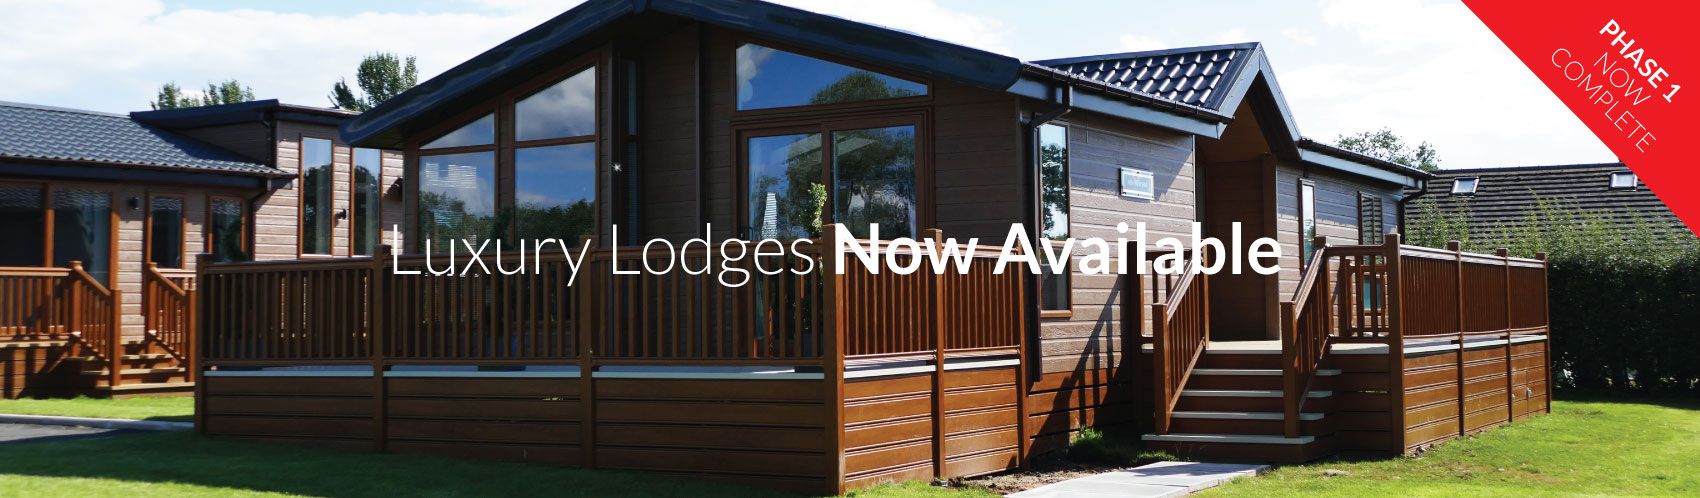 Luxury Lodges from £85,000